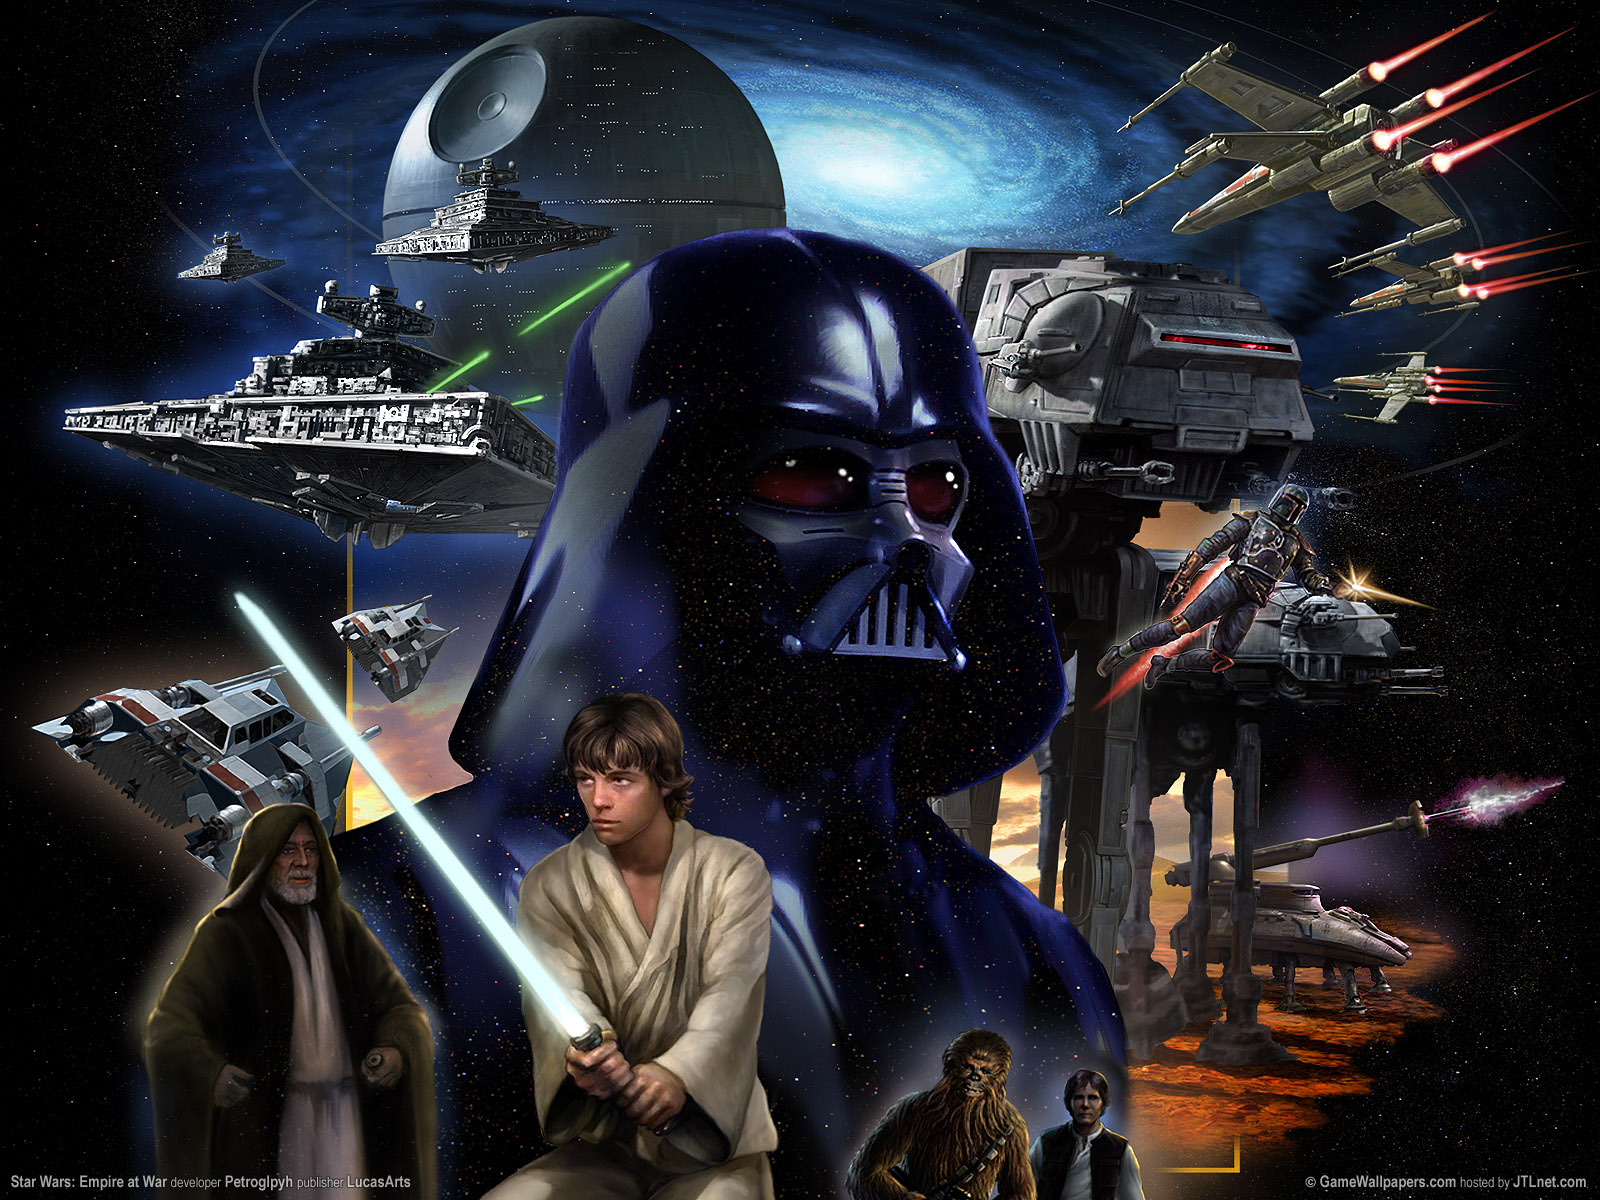 1600x1200 Star Wars: Empire at War desktop PC and Mac wallpaper